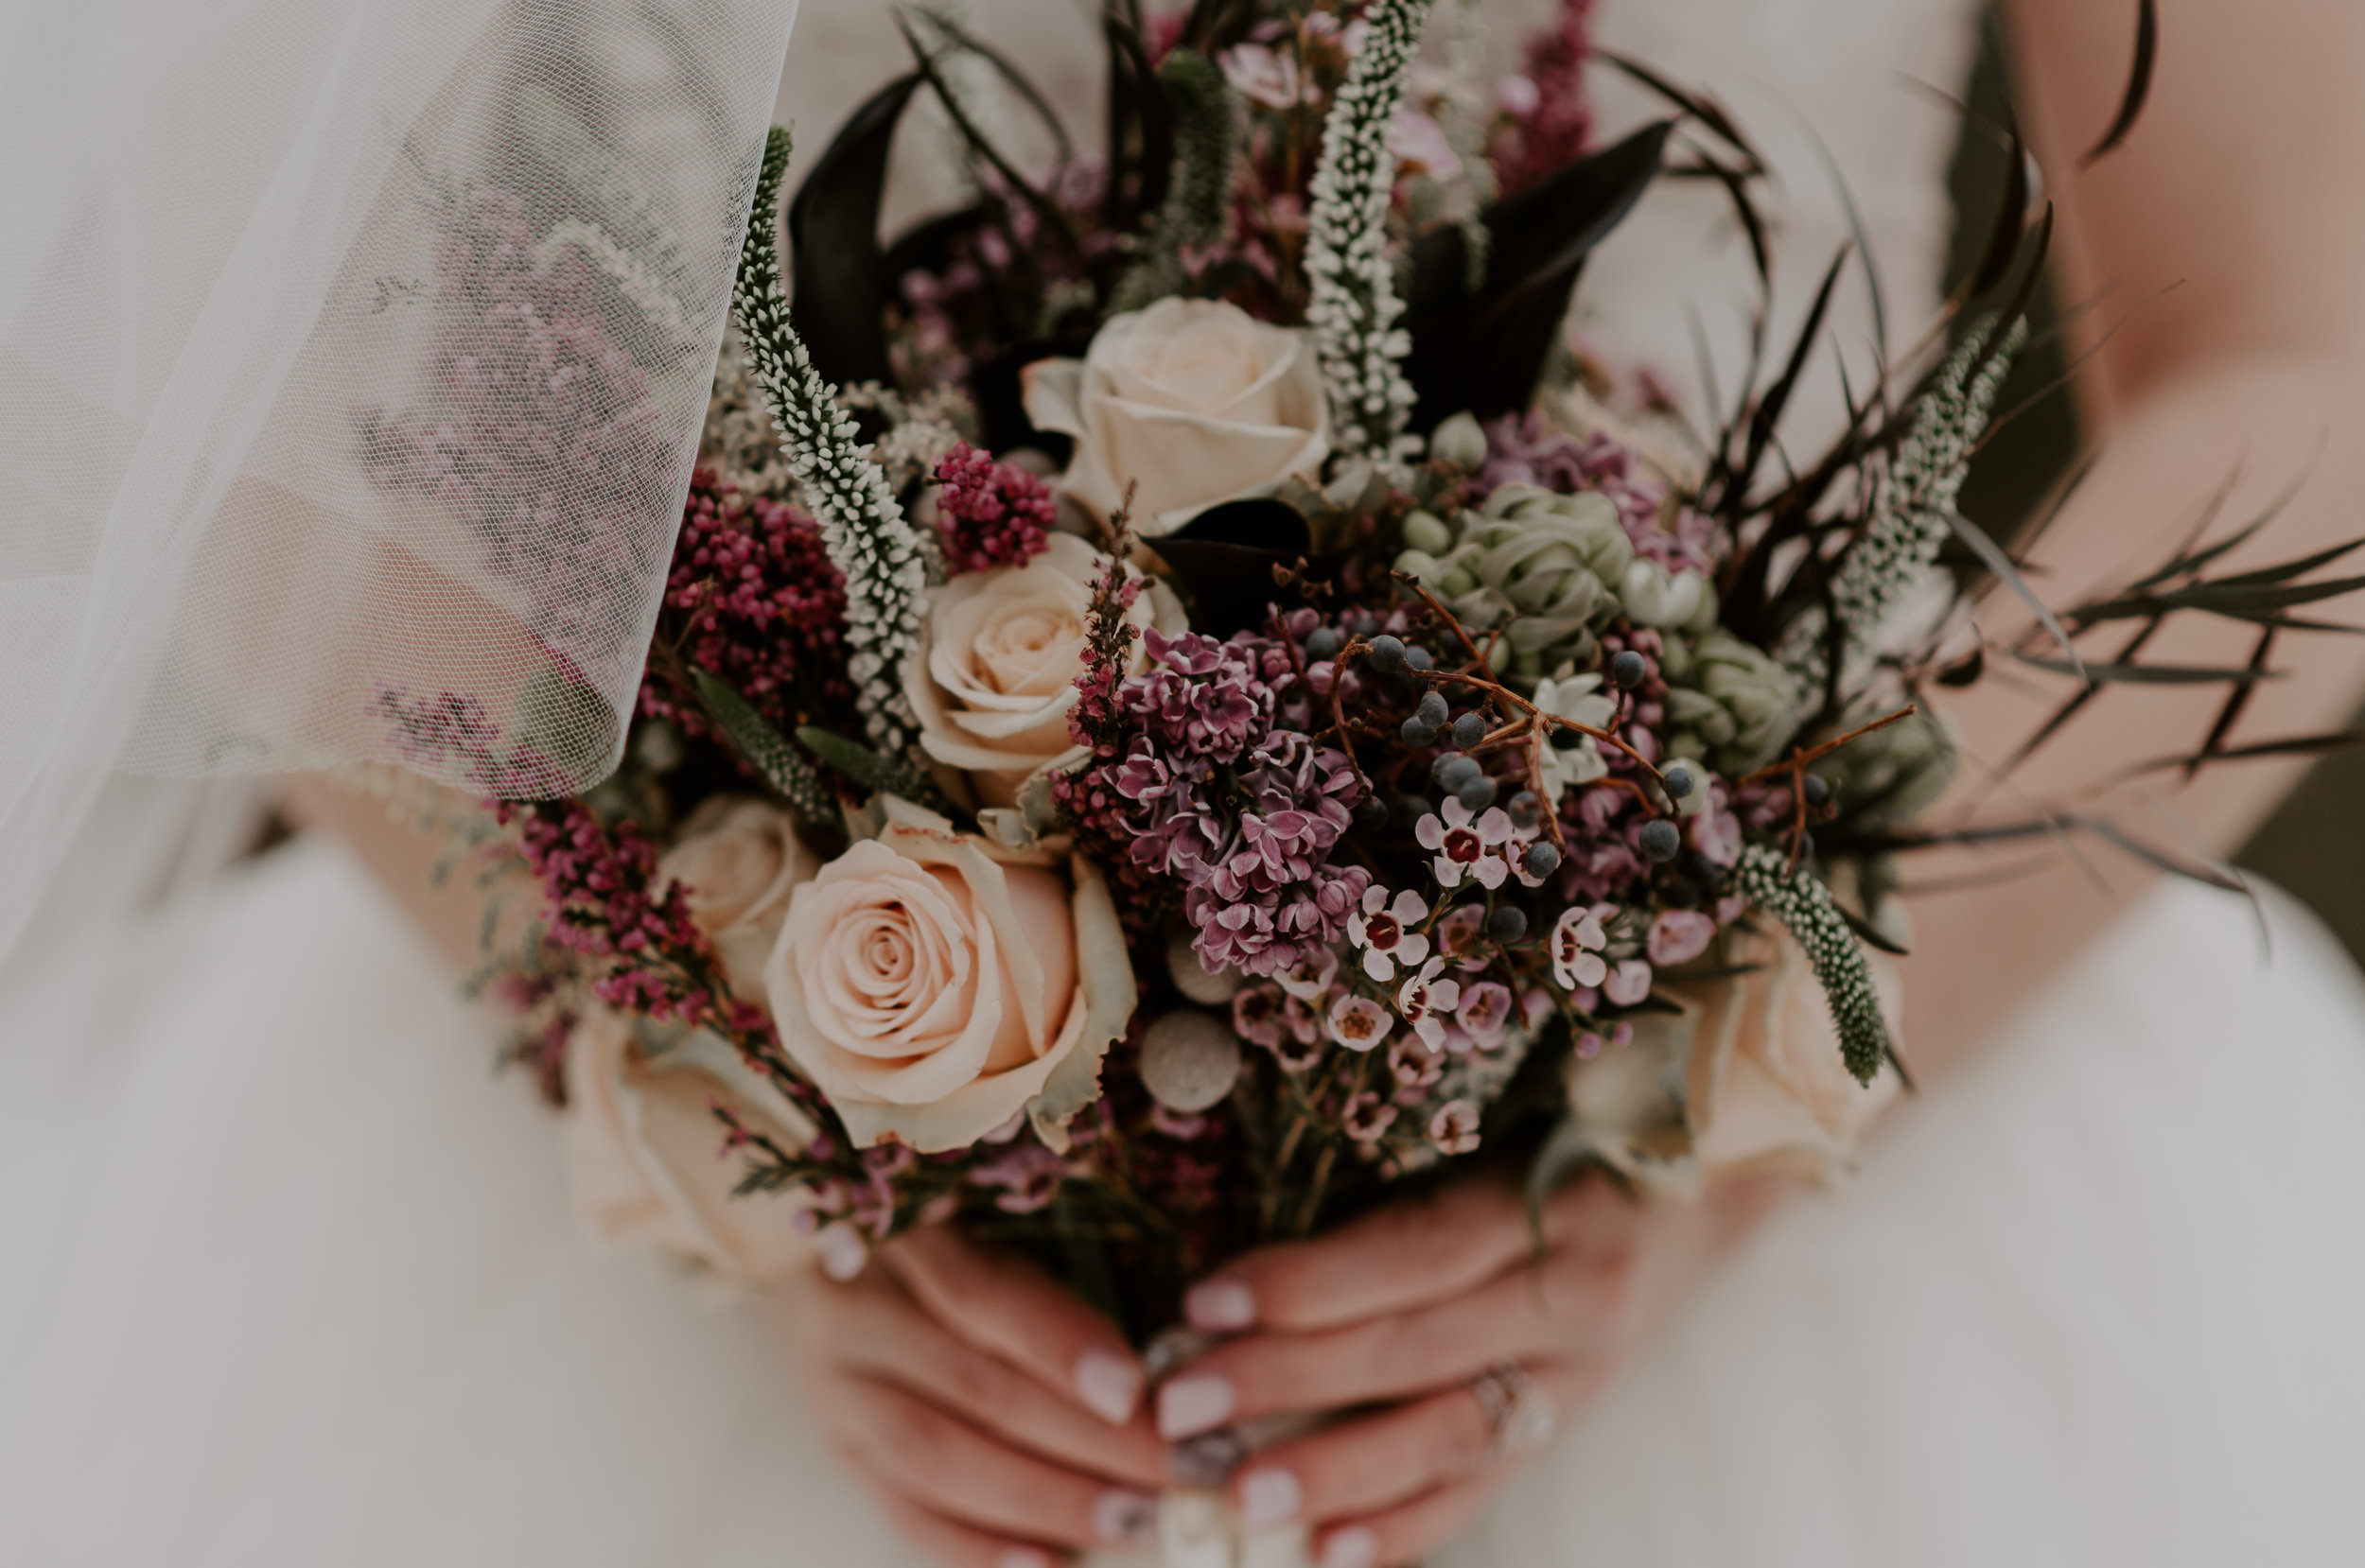 The bride's bouquet after their elopement at Sapphire Point. Colorado wedding and elopement photography.